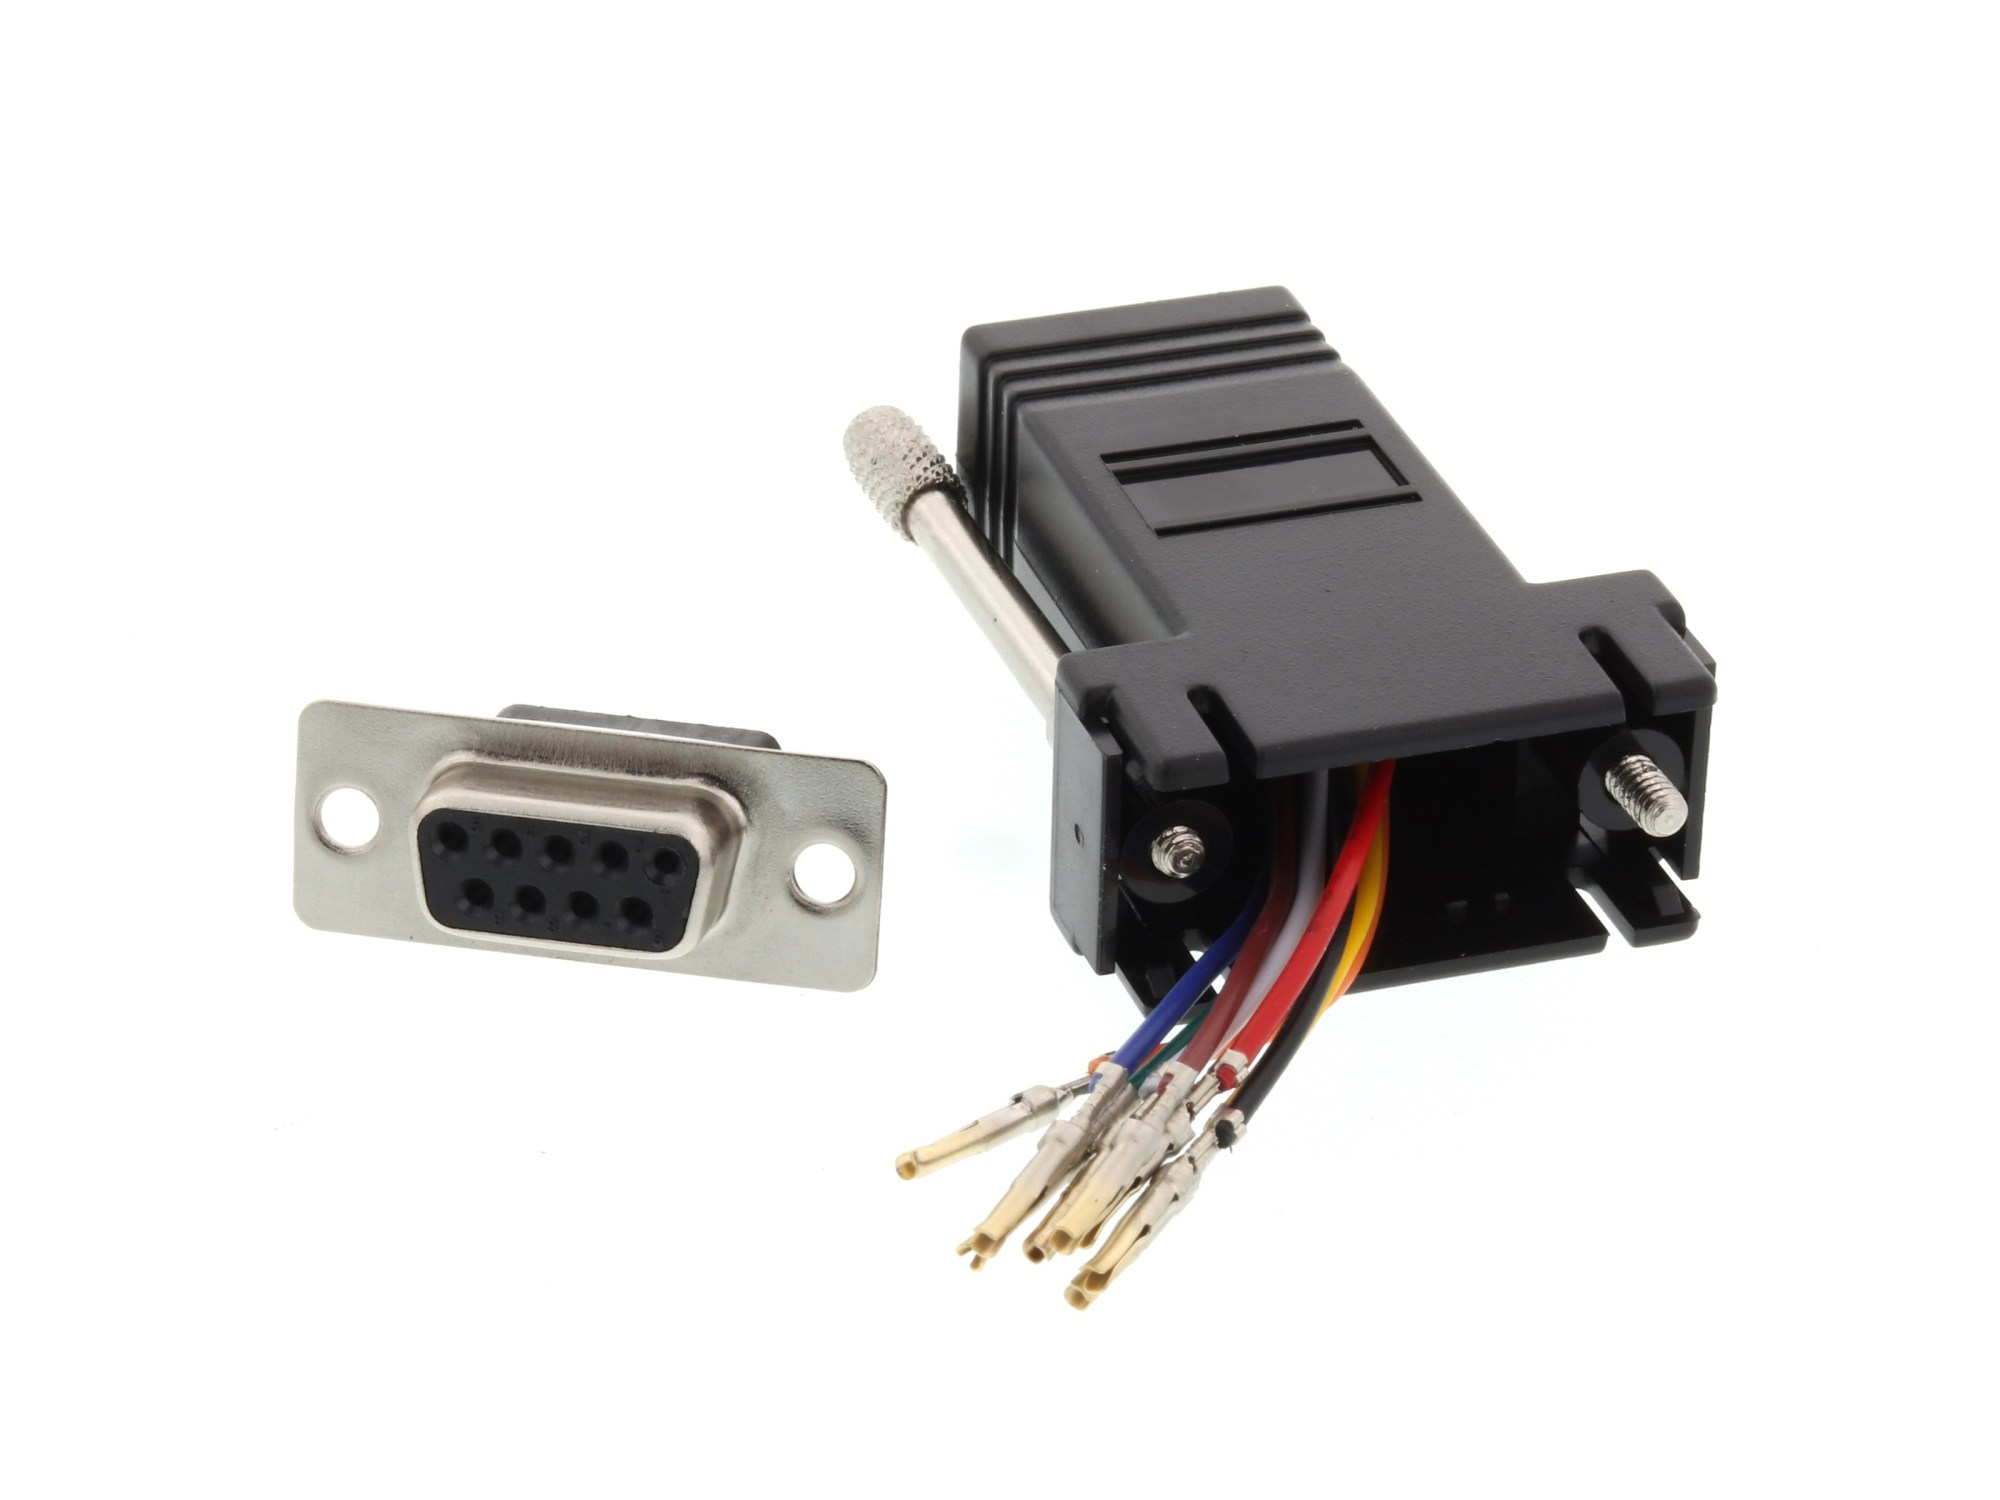 hight resolution of picture of modular adapter kit db9 female to rj45 black